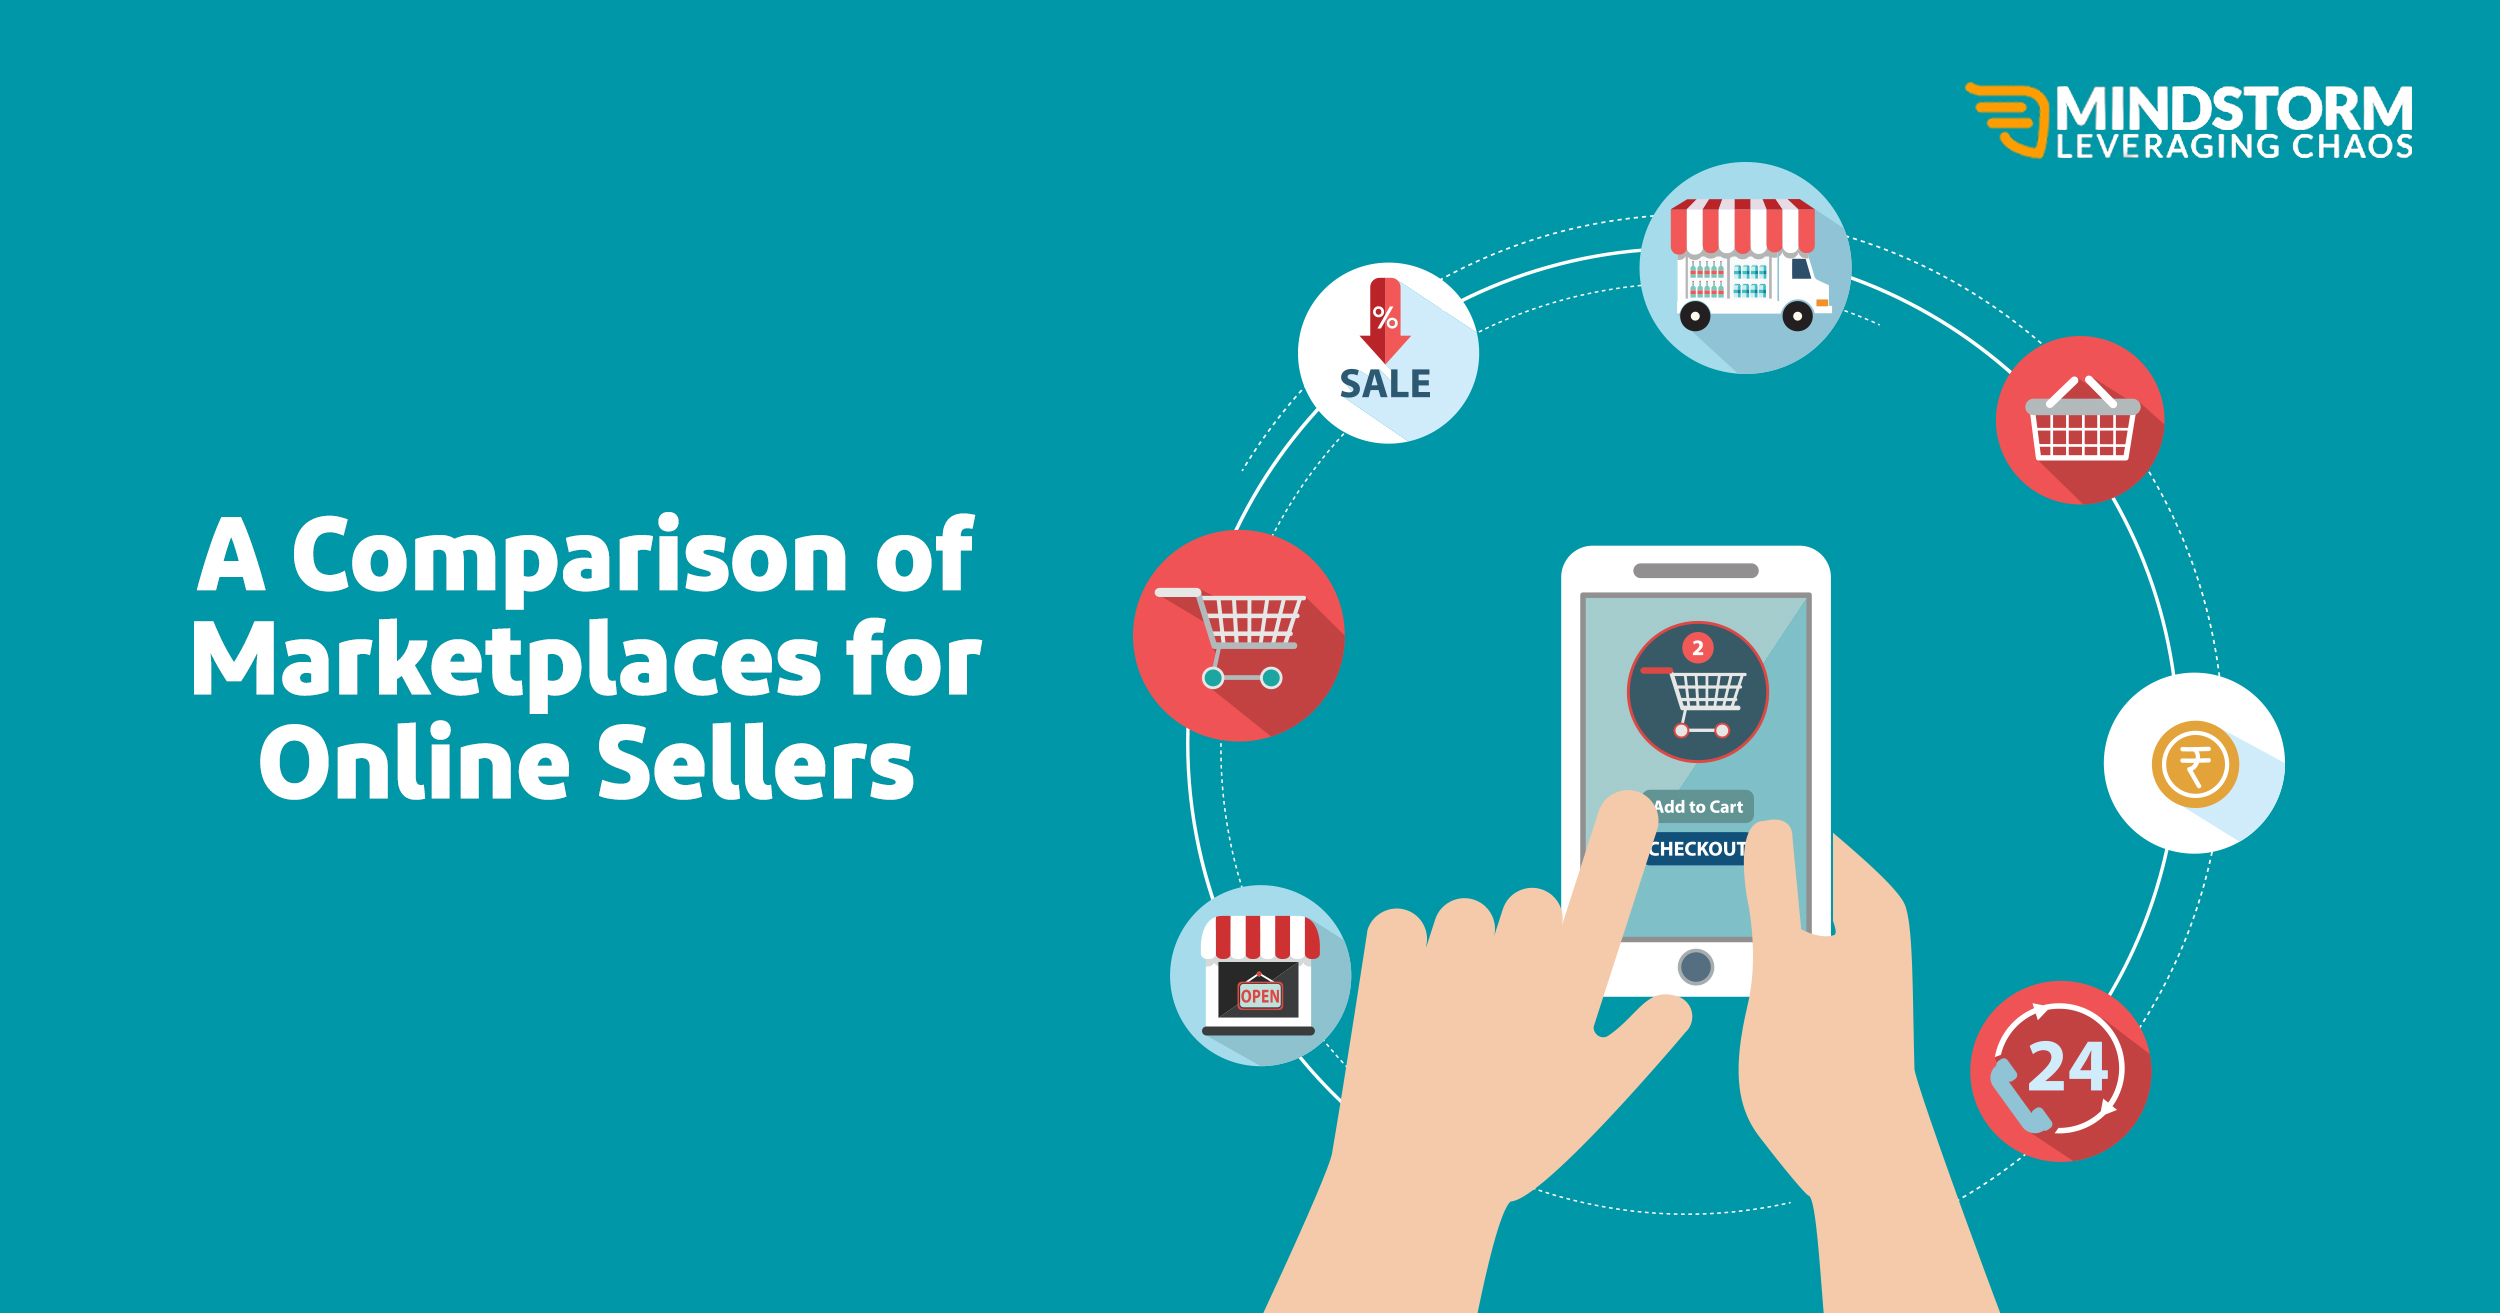 A Comparison of Marketplaces for Online Sellers